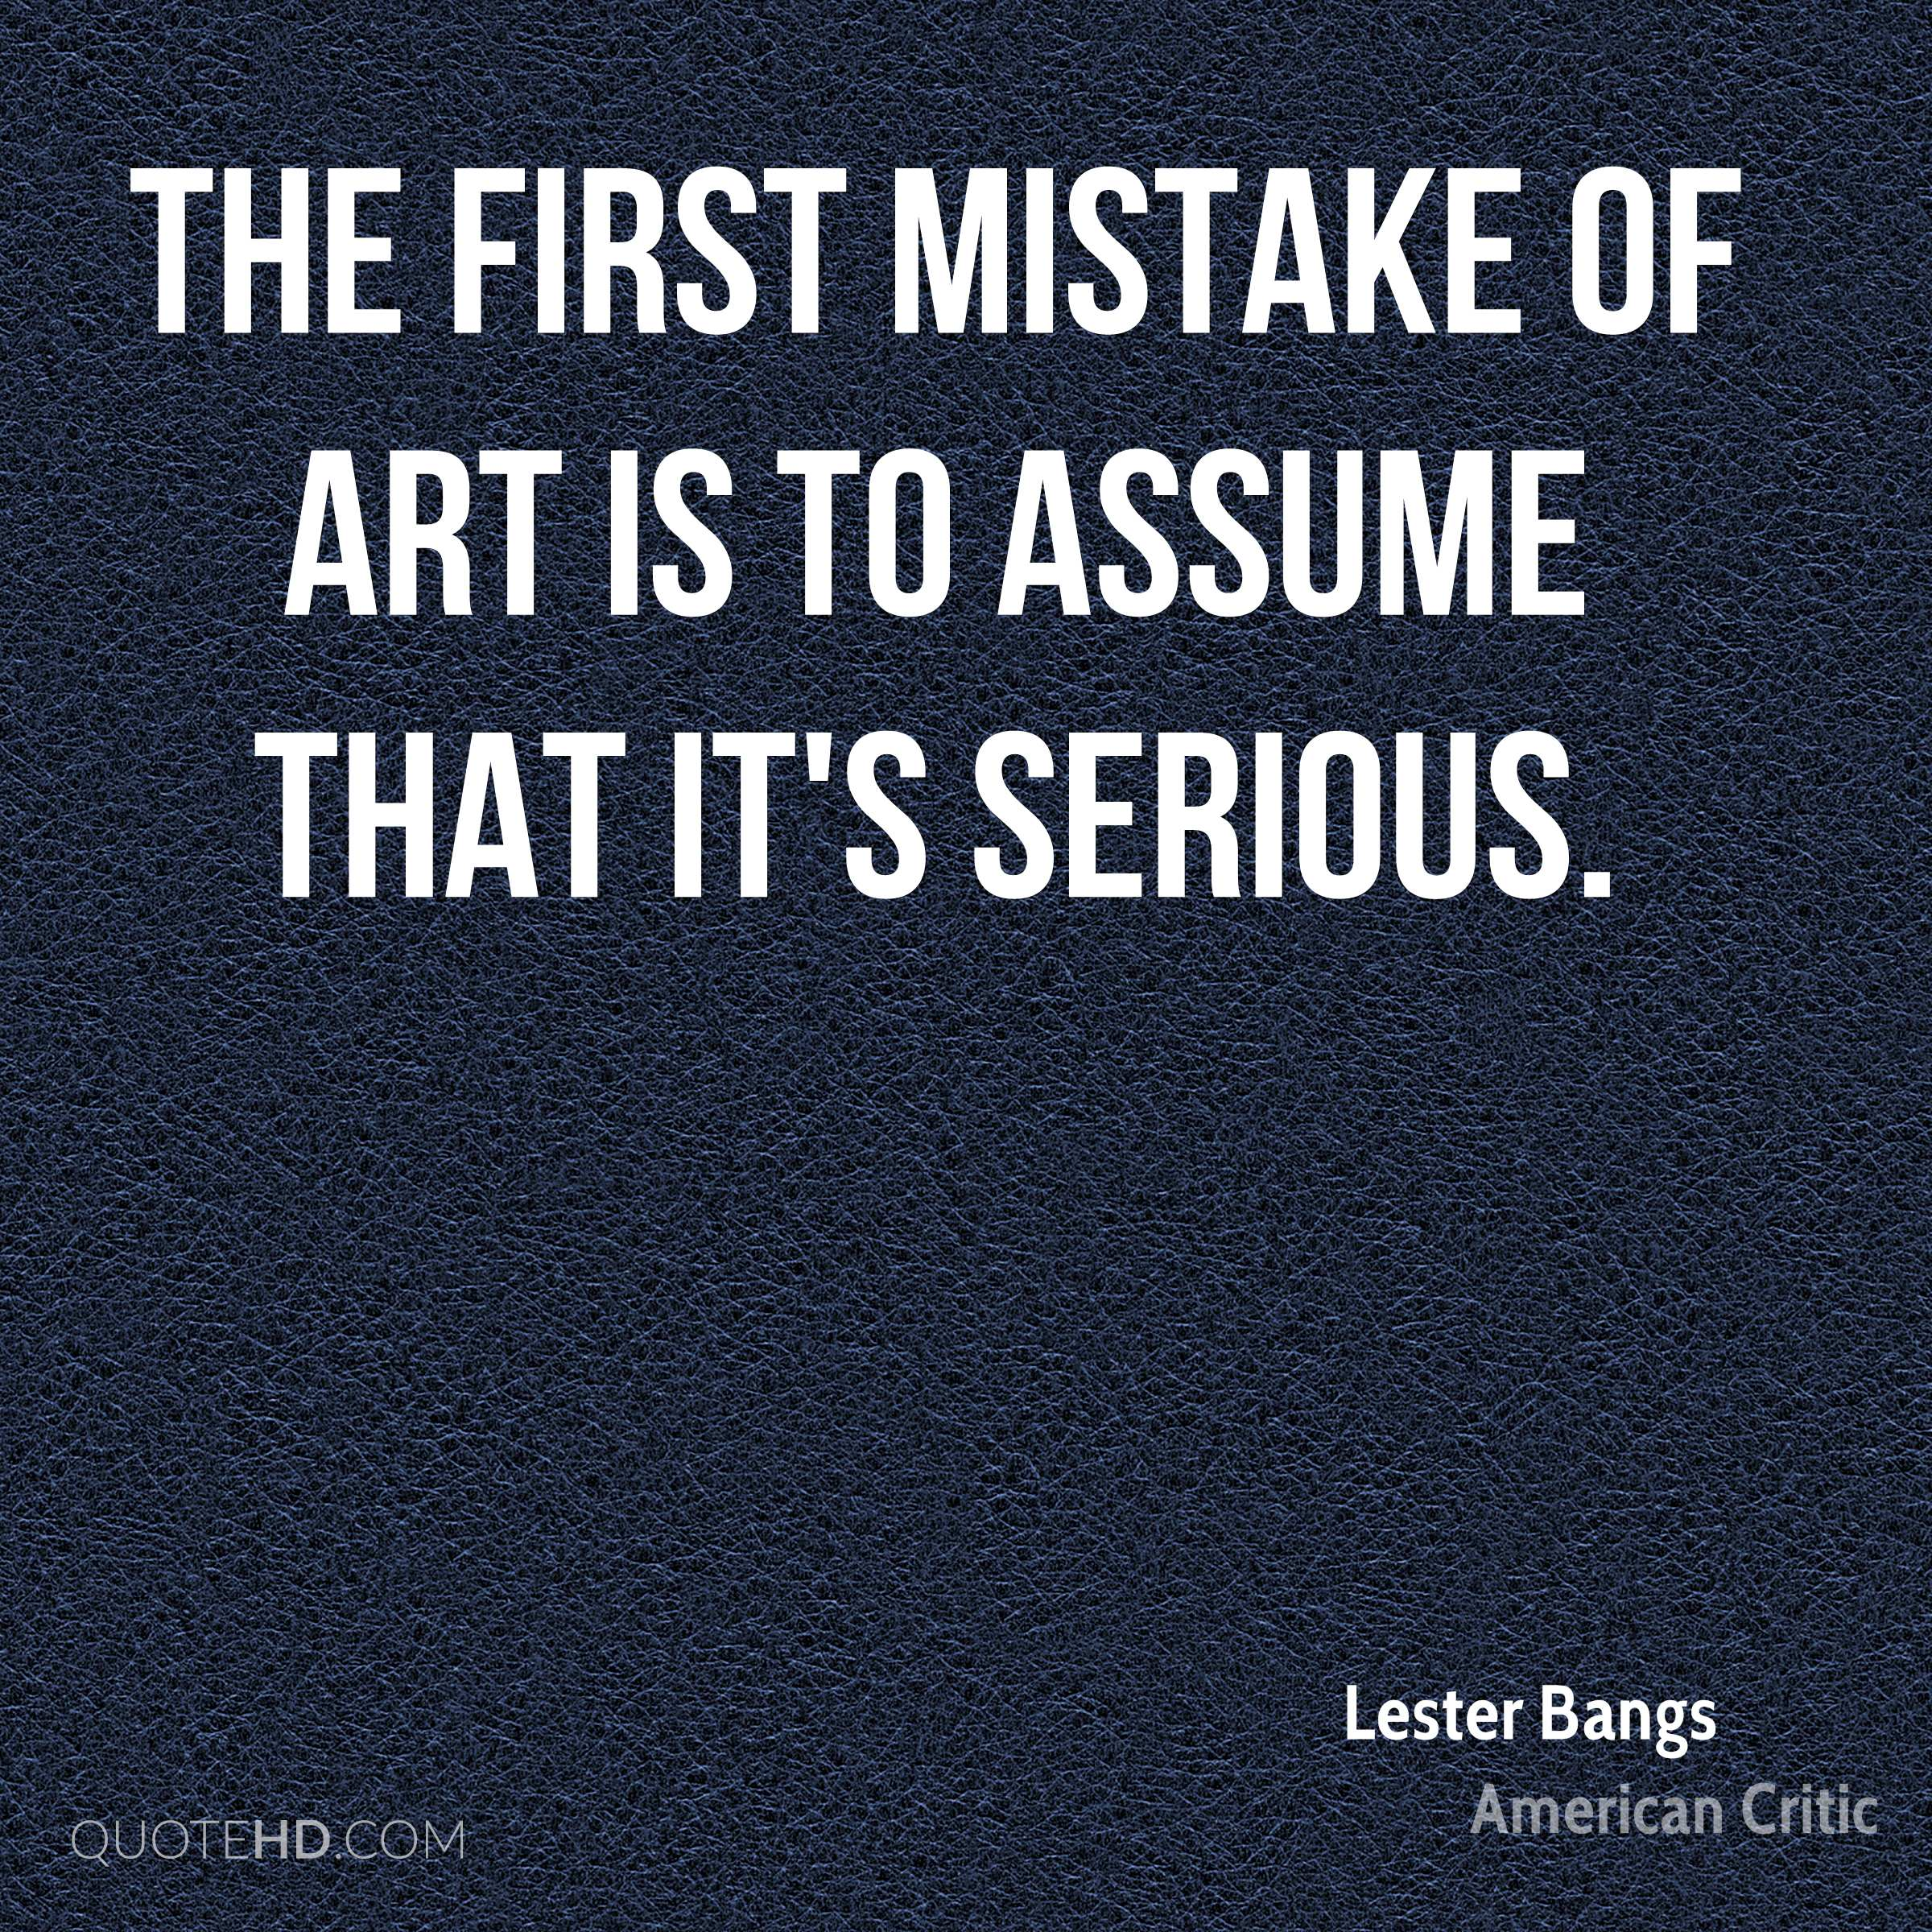 The first mistake of art is to assume that it's serious.